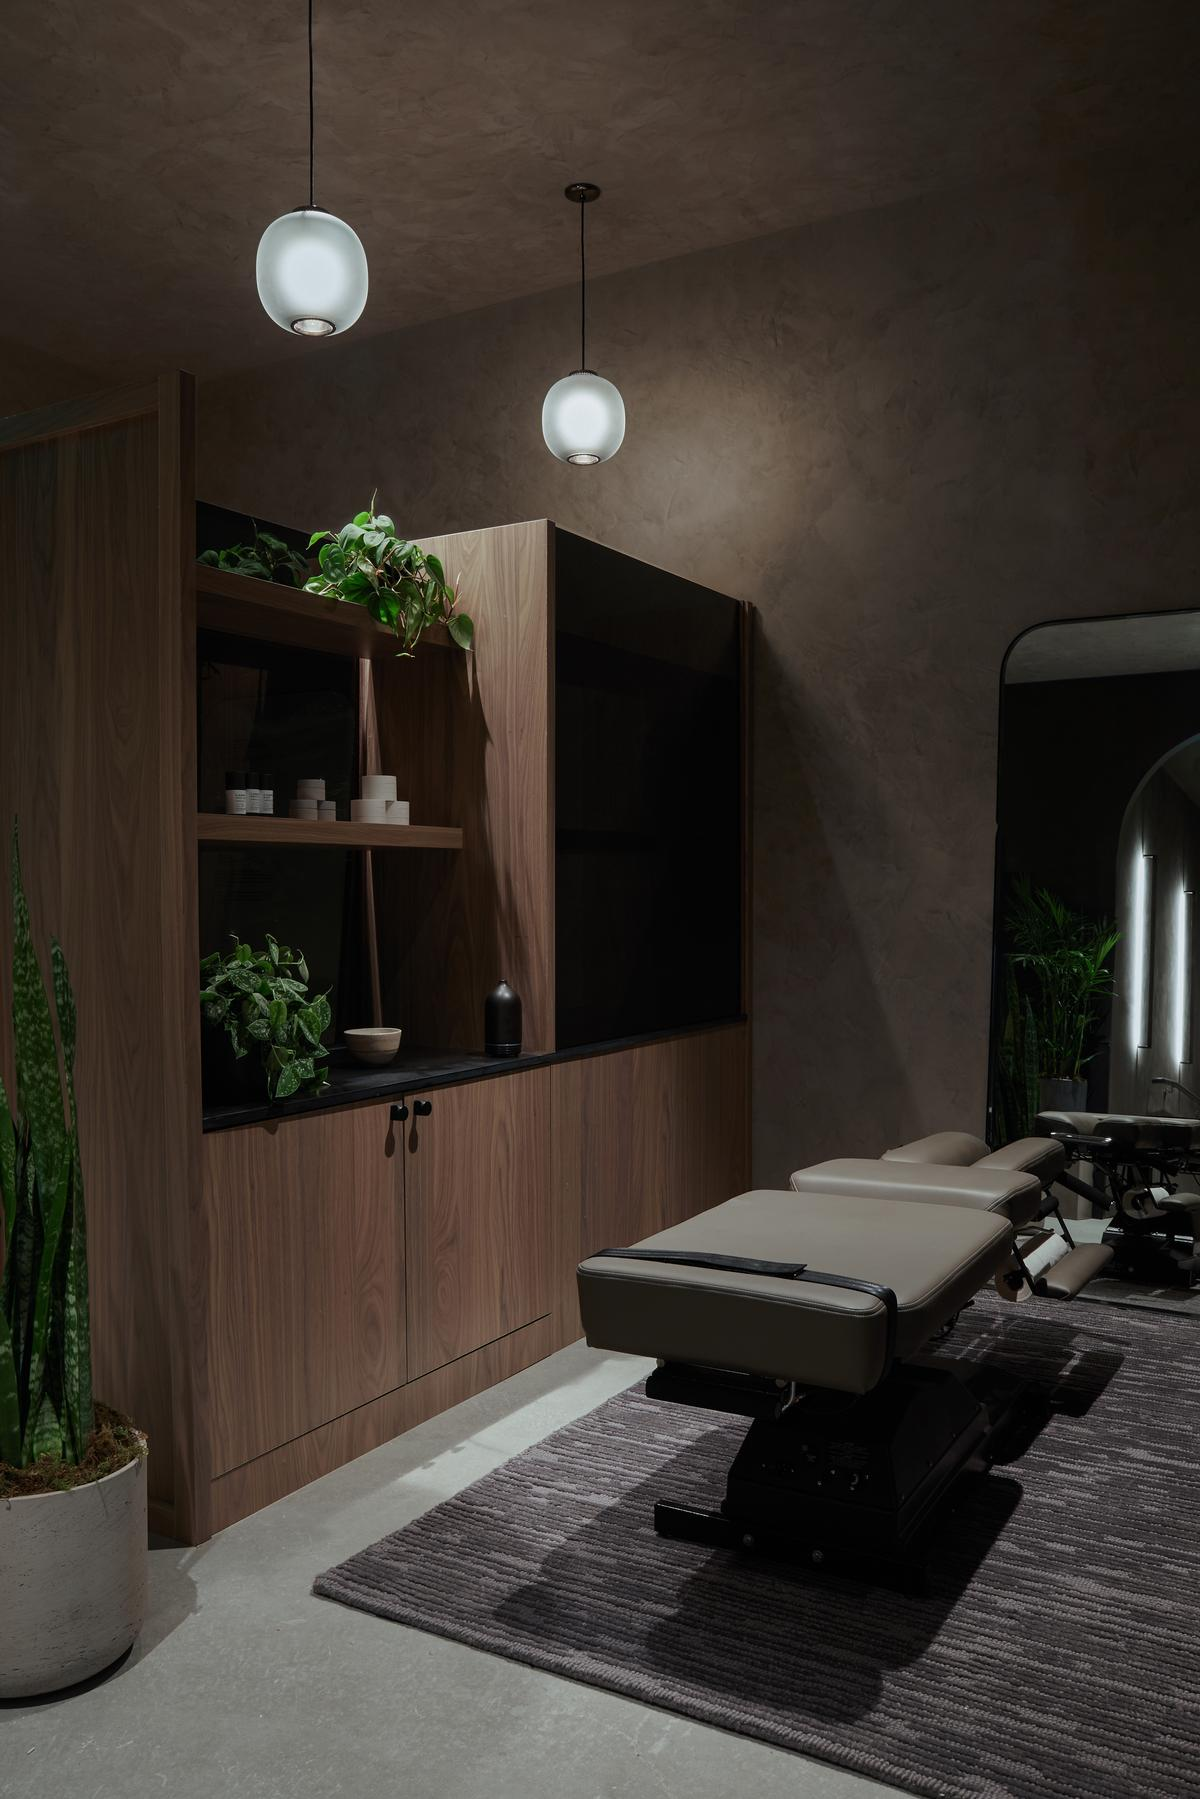 The centre features are lymphatic drainage massage facilities